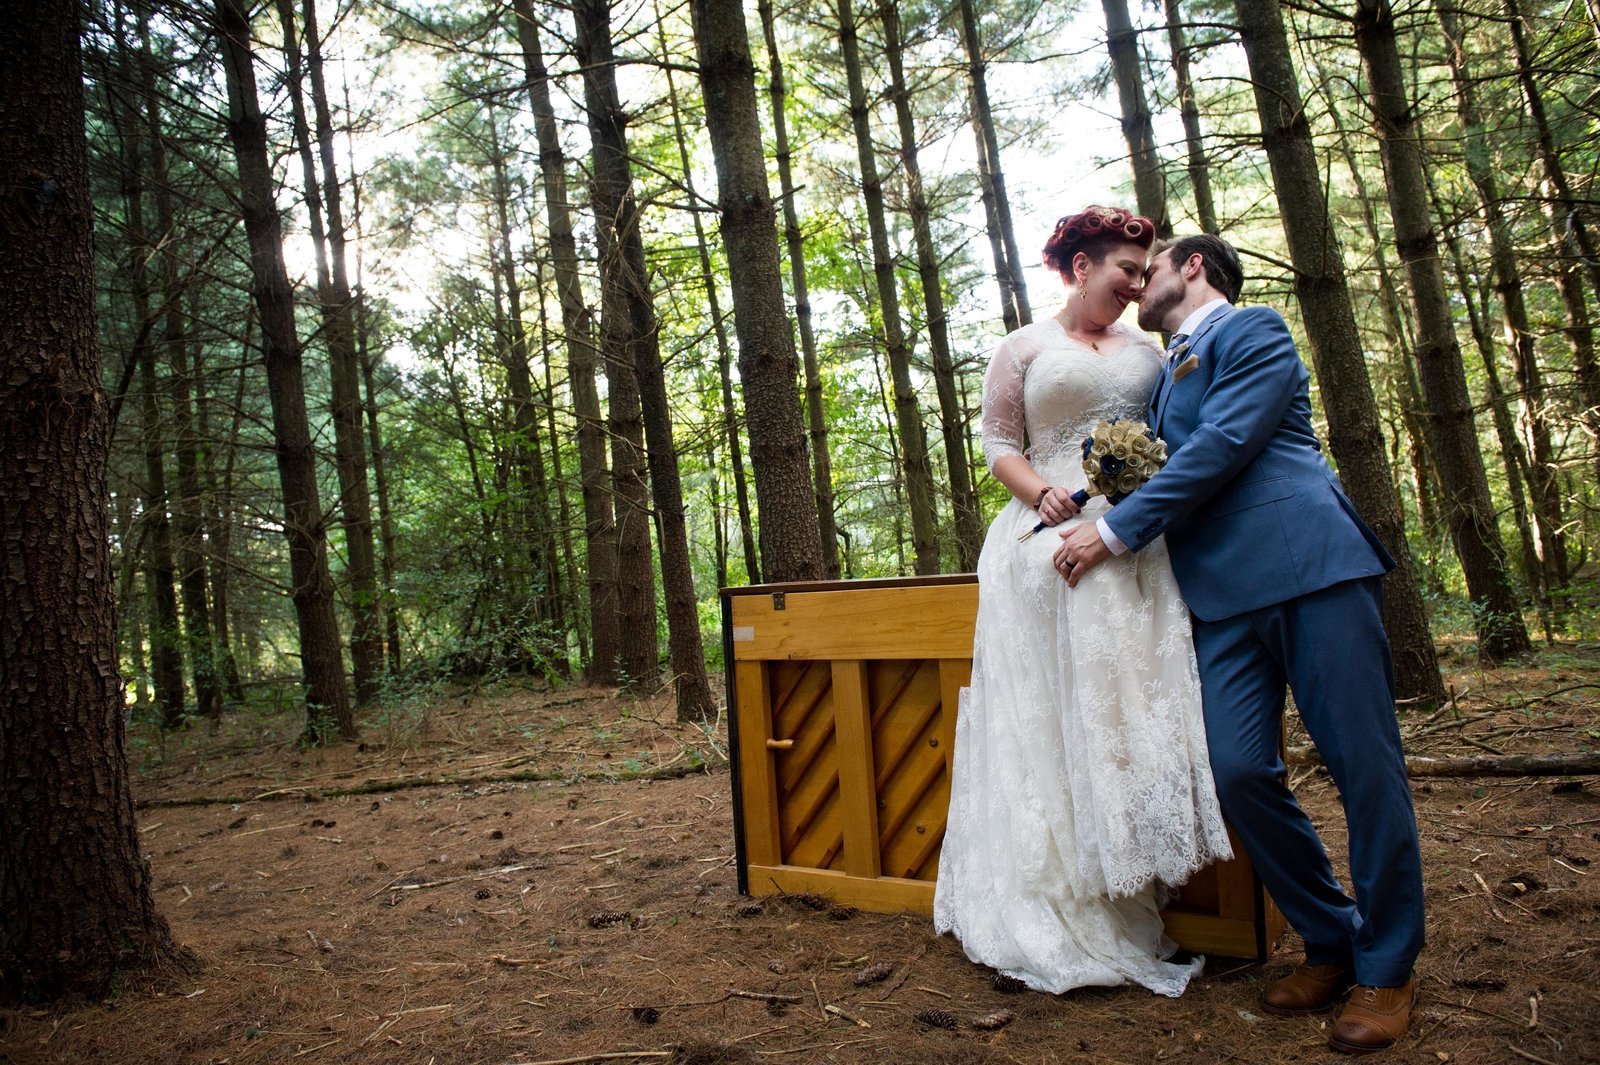 Bride and groom, just married, post on piano in forest.